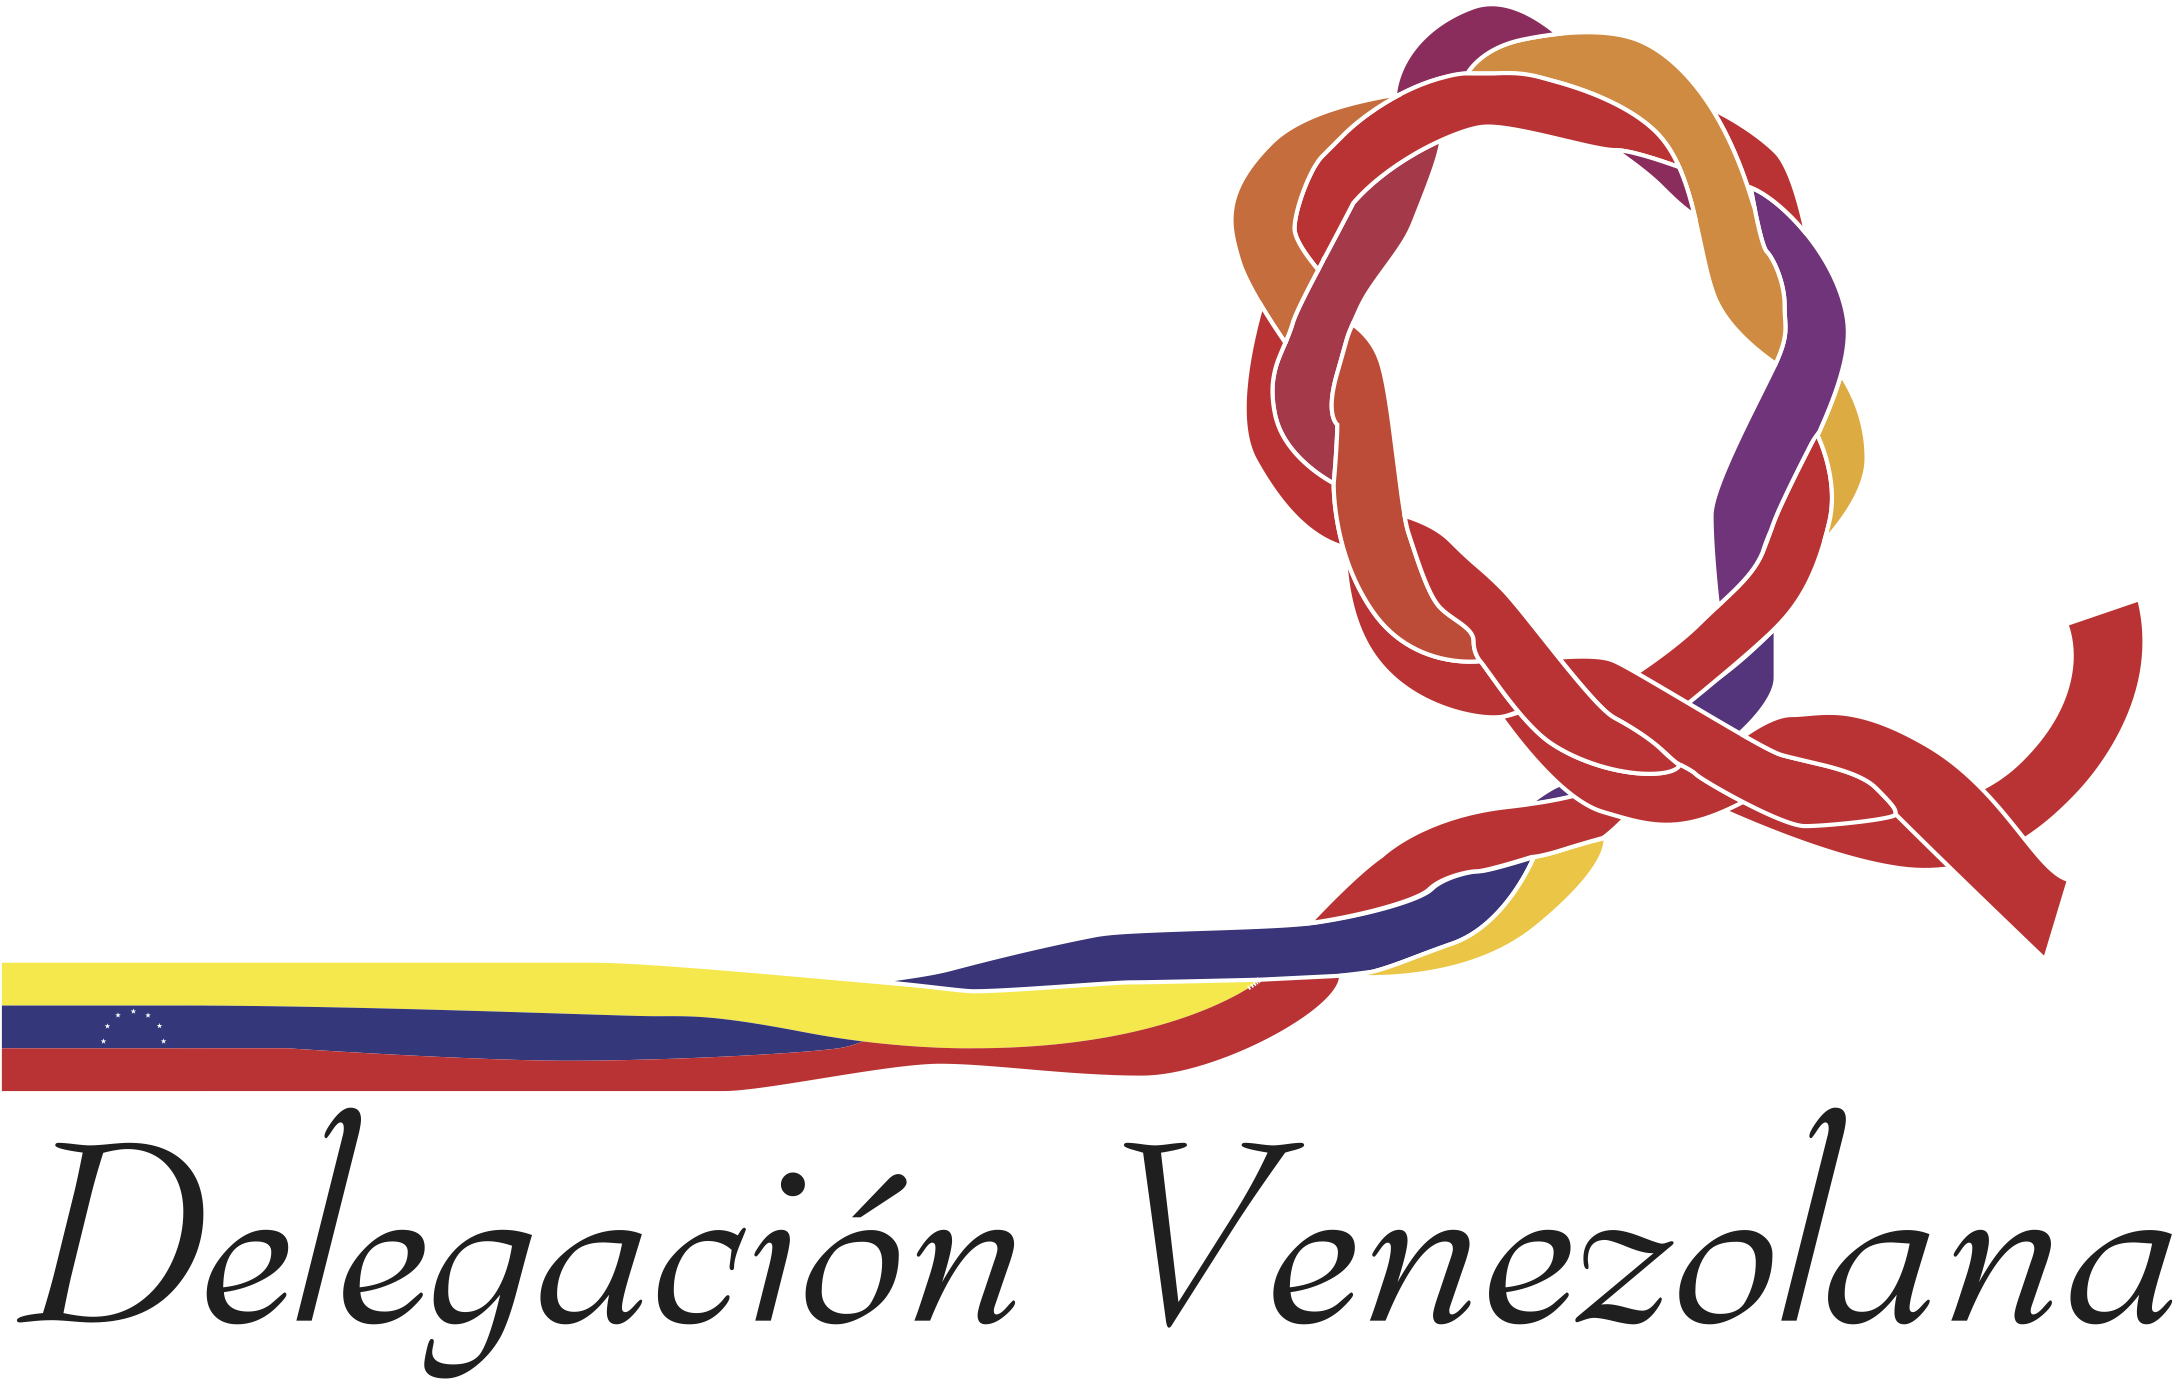 Logo for the 2001 Venezuelan Delegation on HIV/AIDS to the U.N. General Assembly